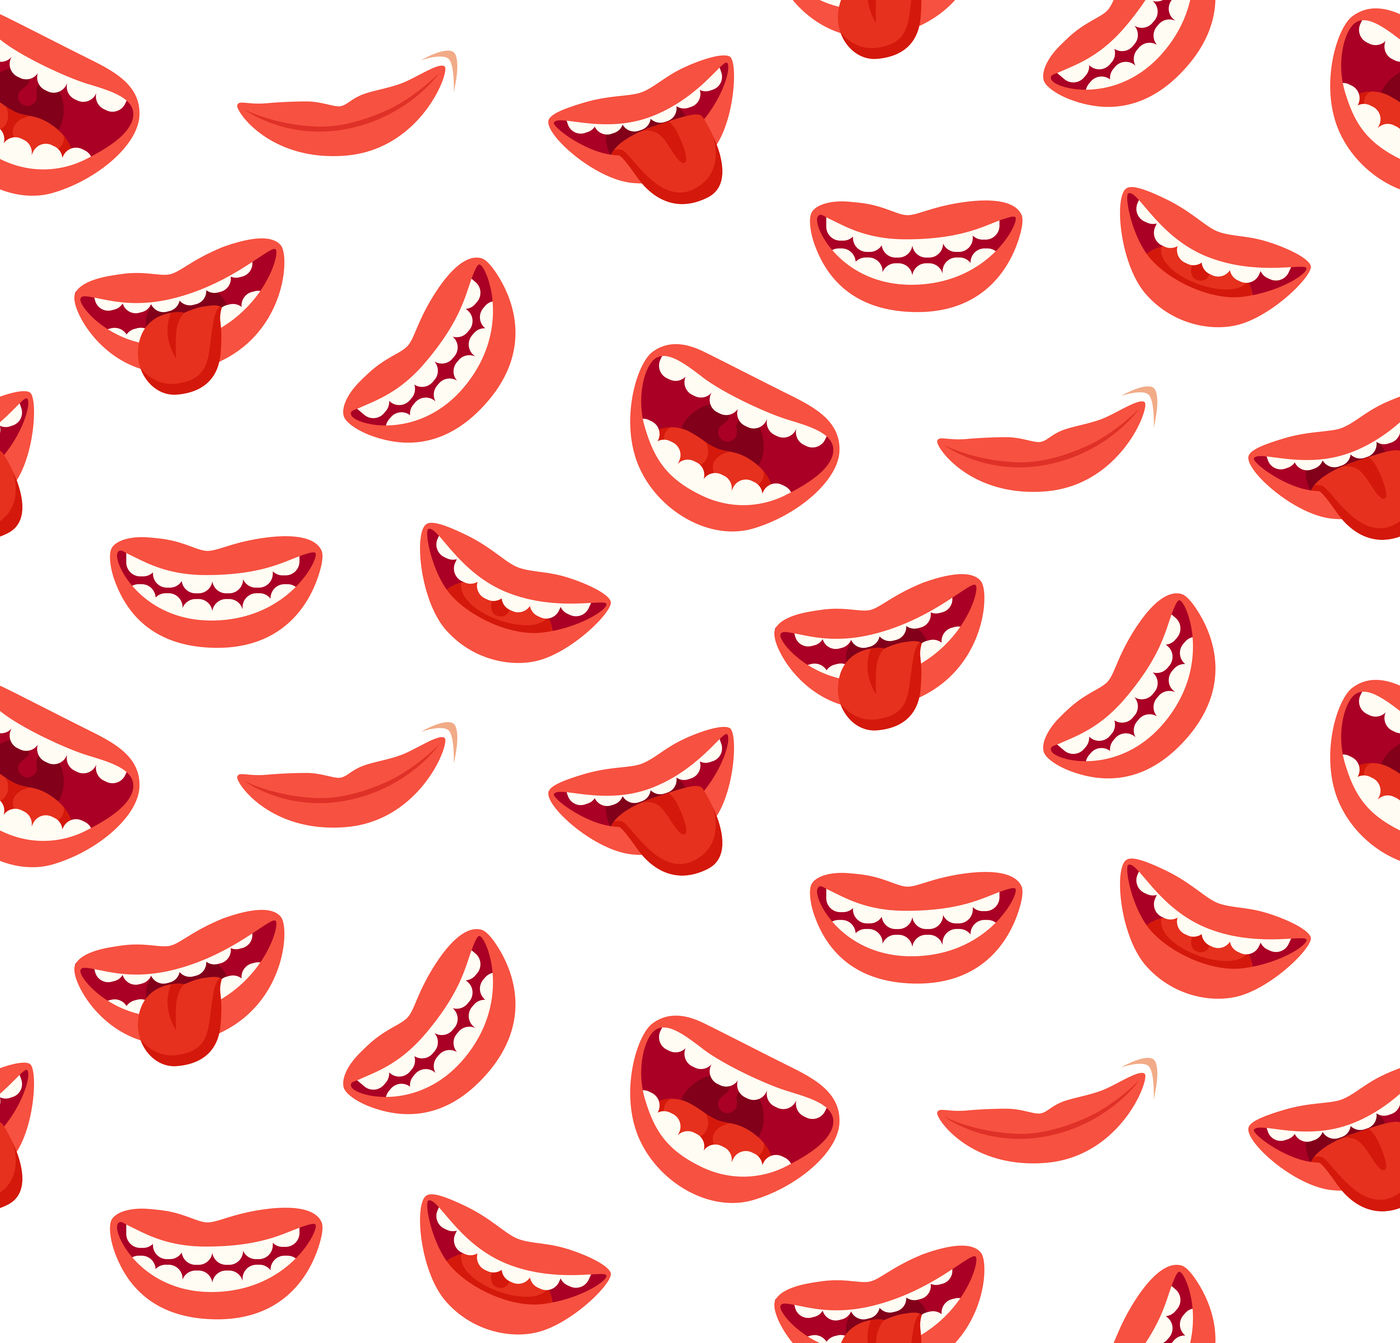 Cartoon Smiling Lips Seamless Pattern Laughing Mouth With Tongue